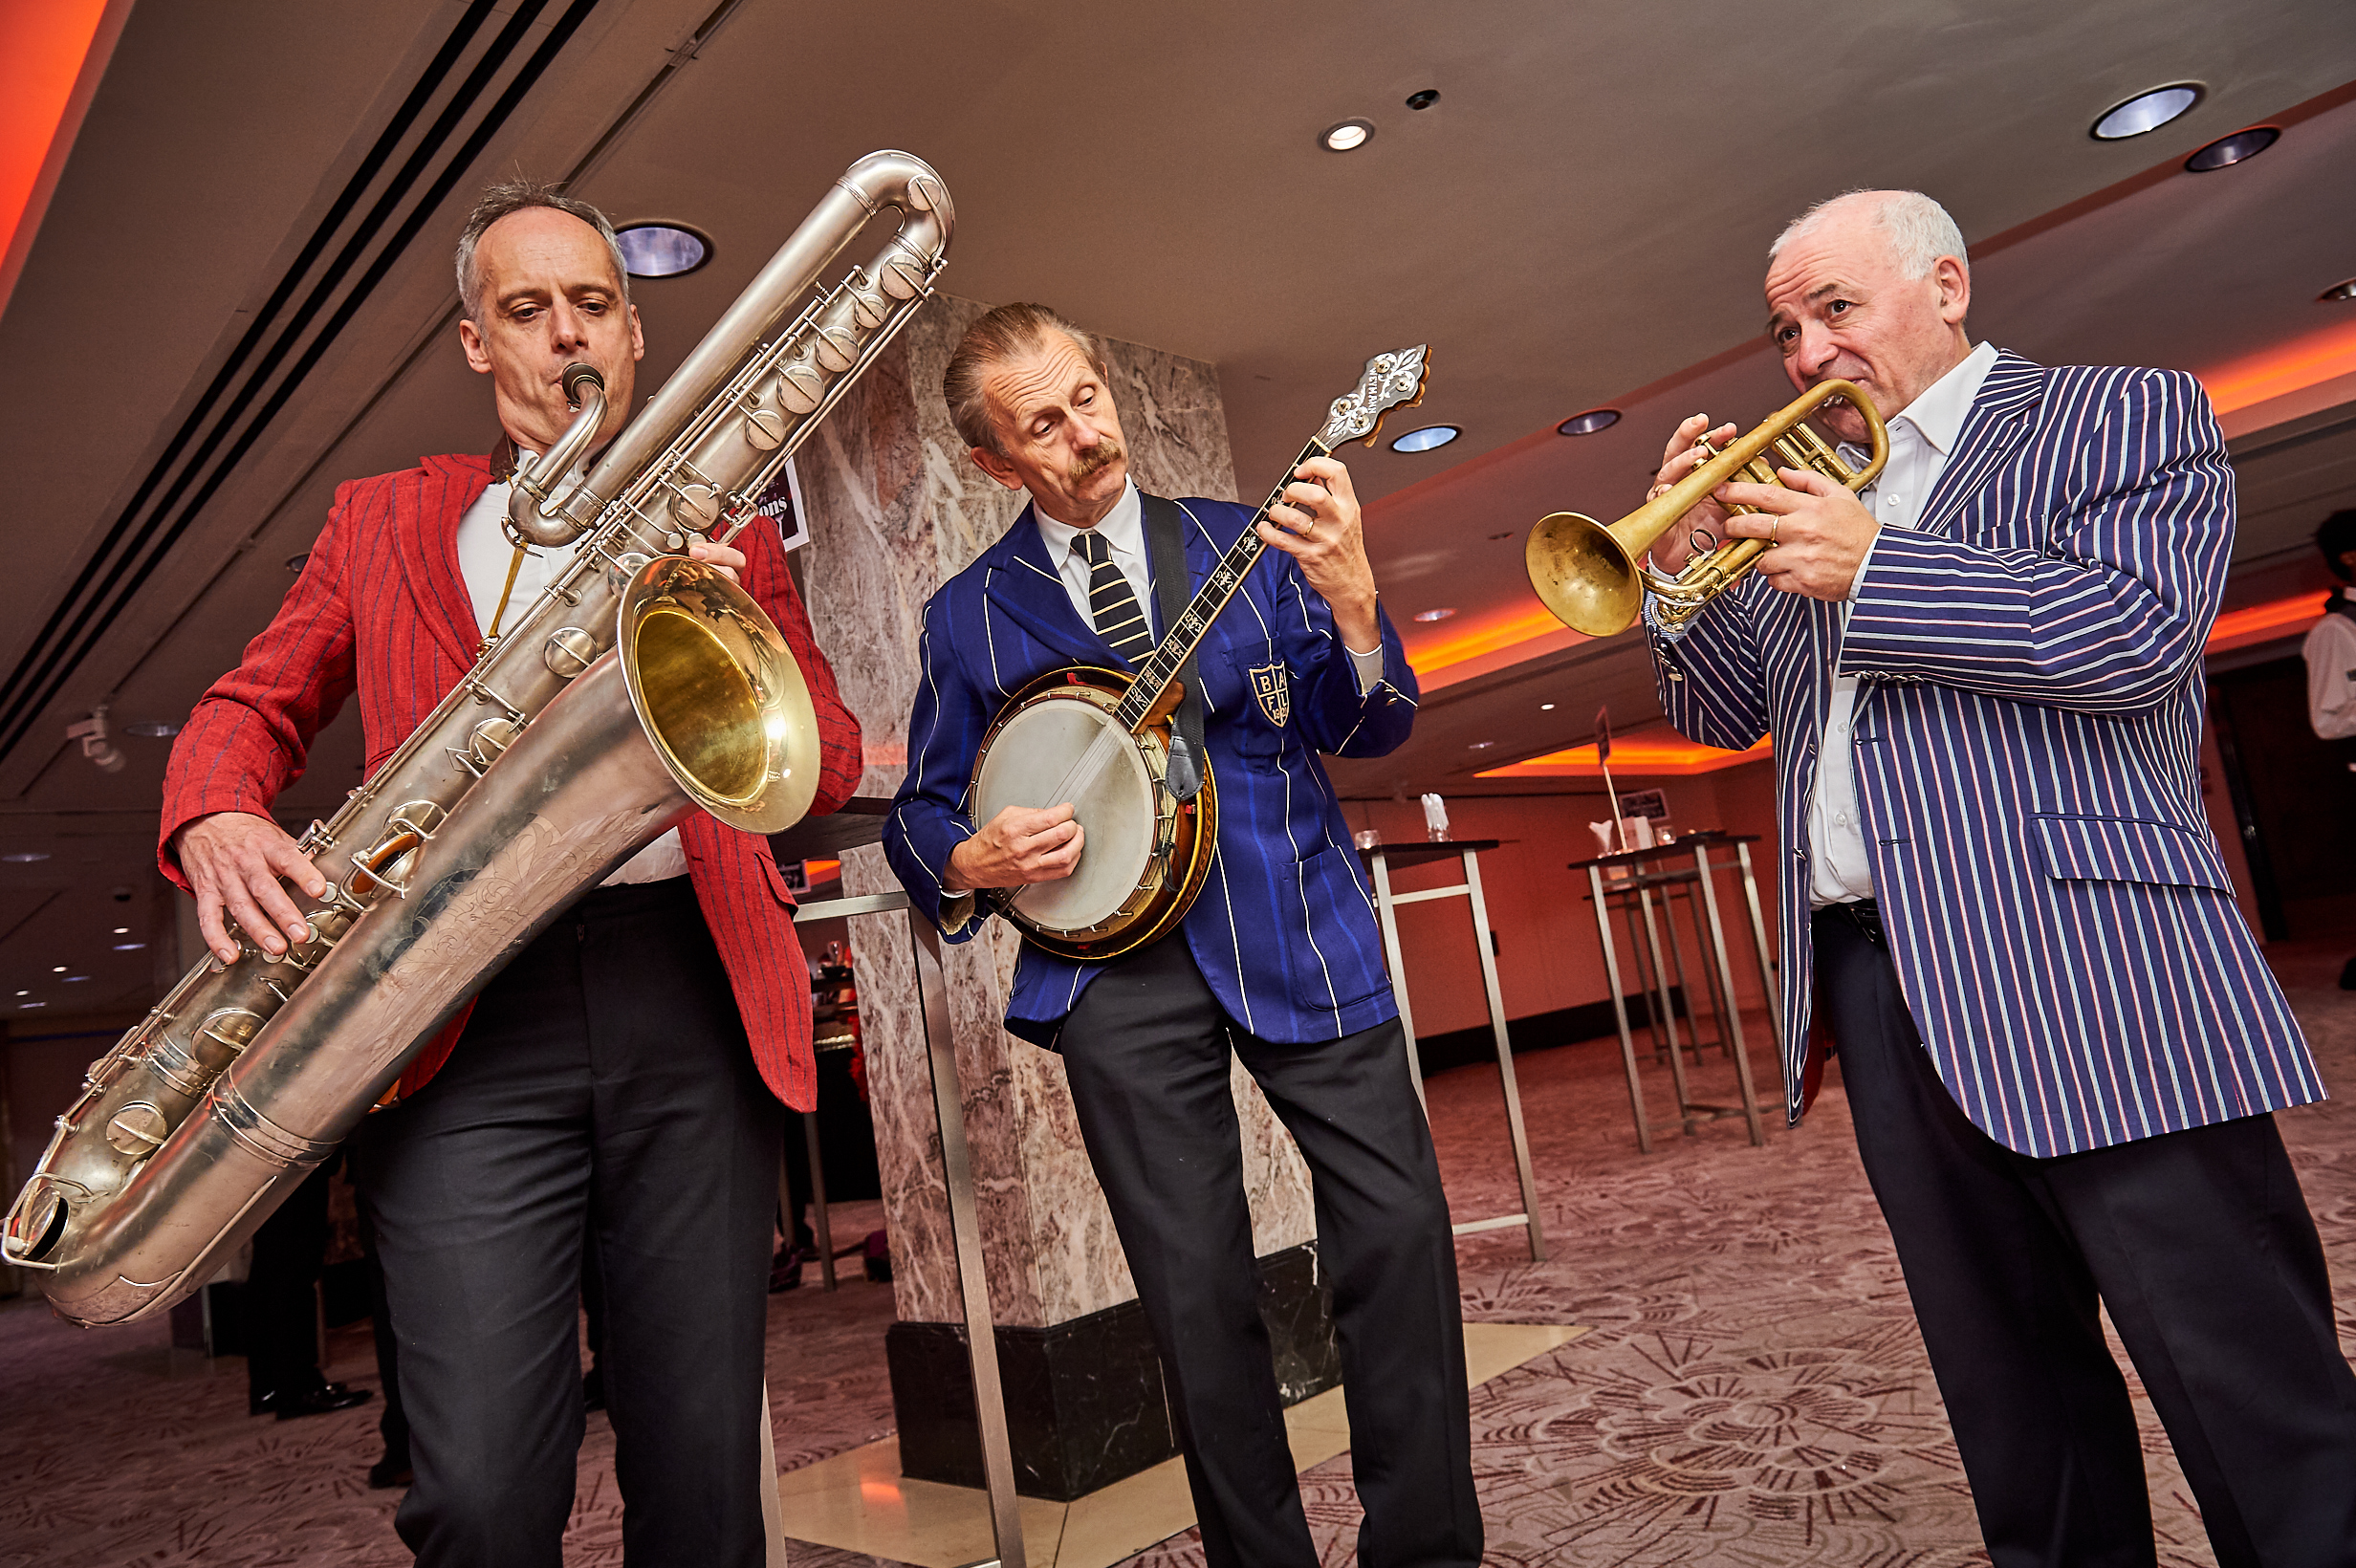 Above: The 12th Street Swingers in full flow in the reception.